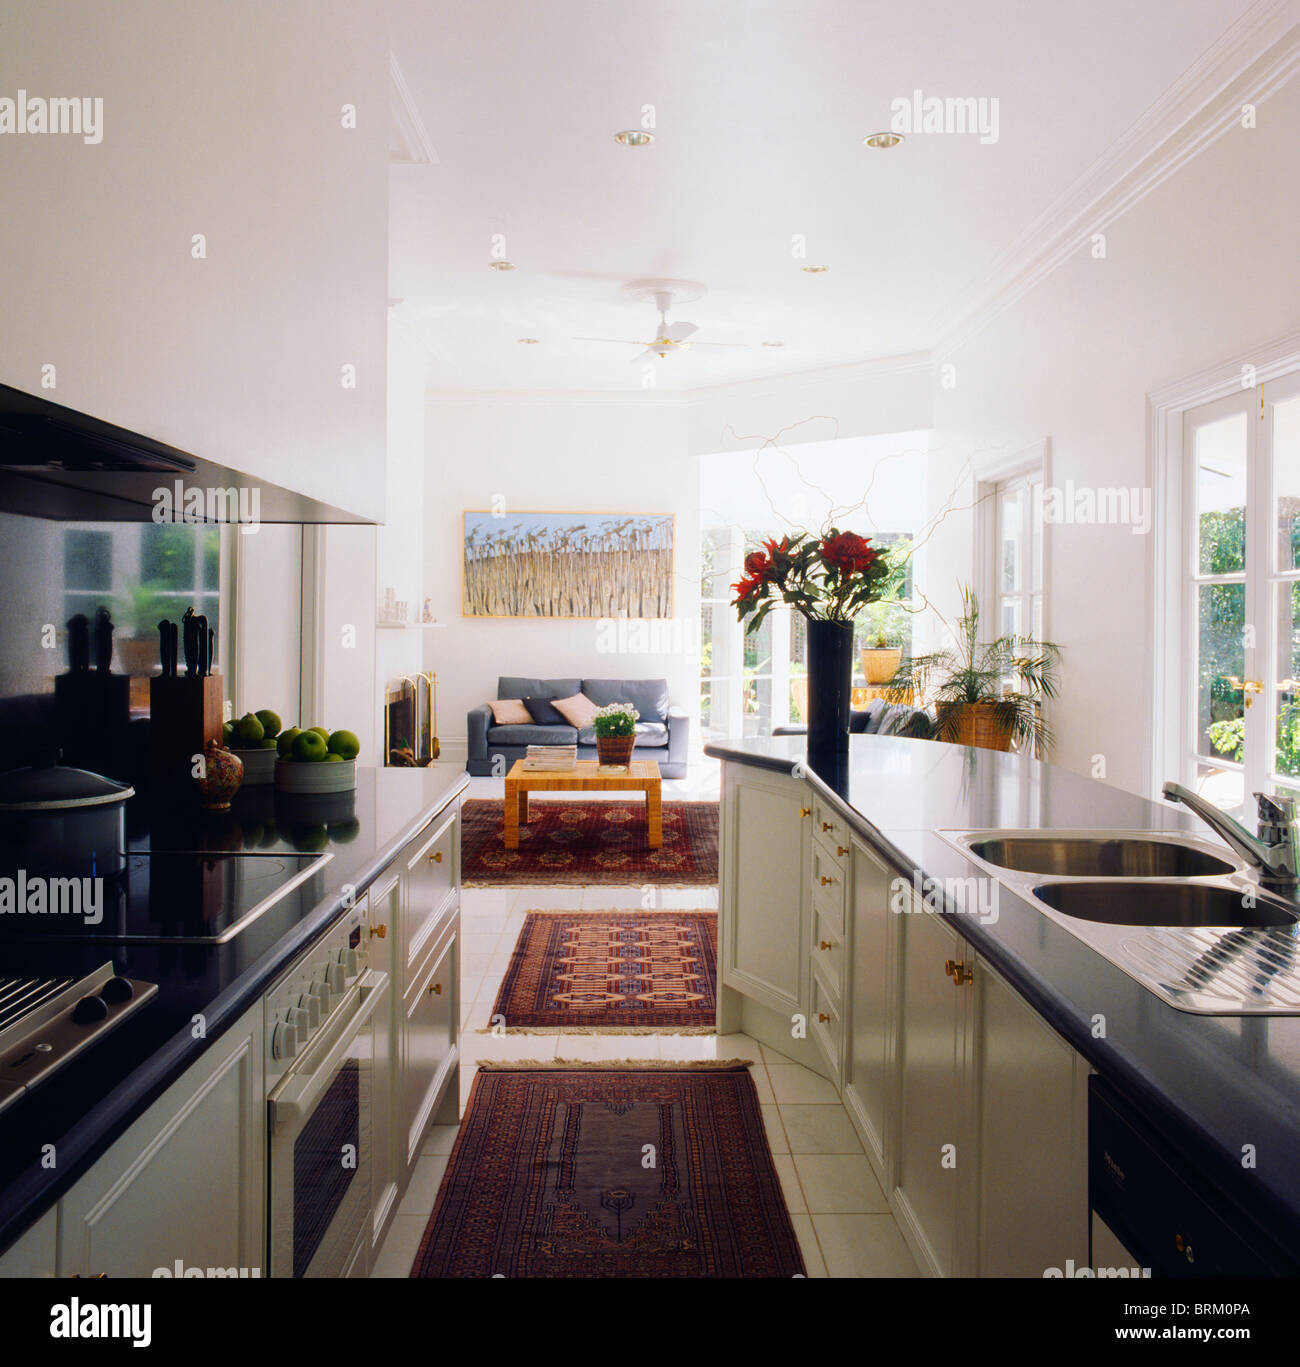 Family Room Kitchen Open Floor Plan White Kitchen: Rugs On Floor In Open-plan White Galley Kitchen With Black